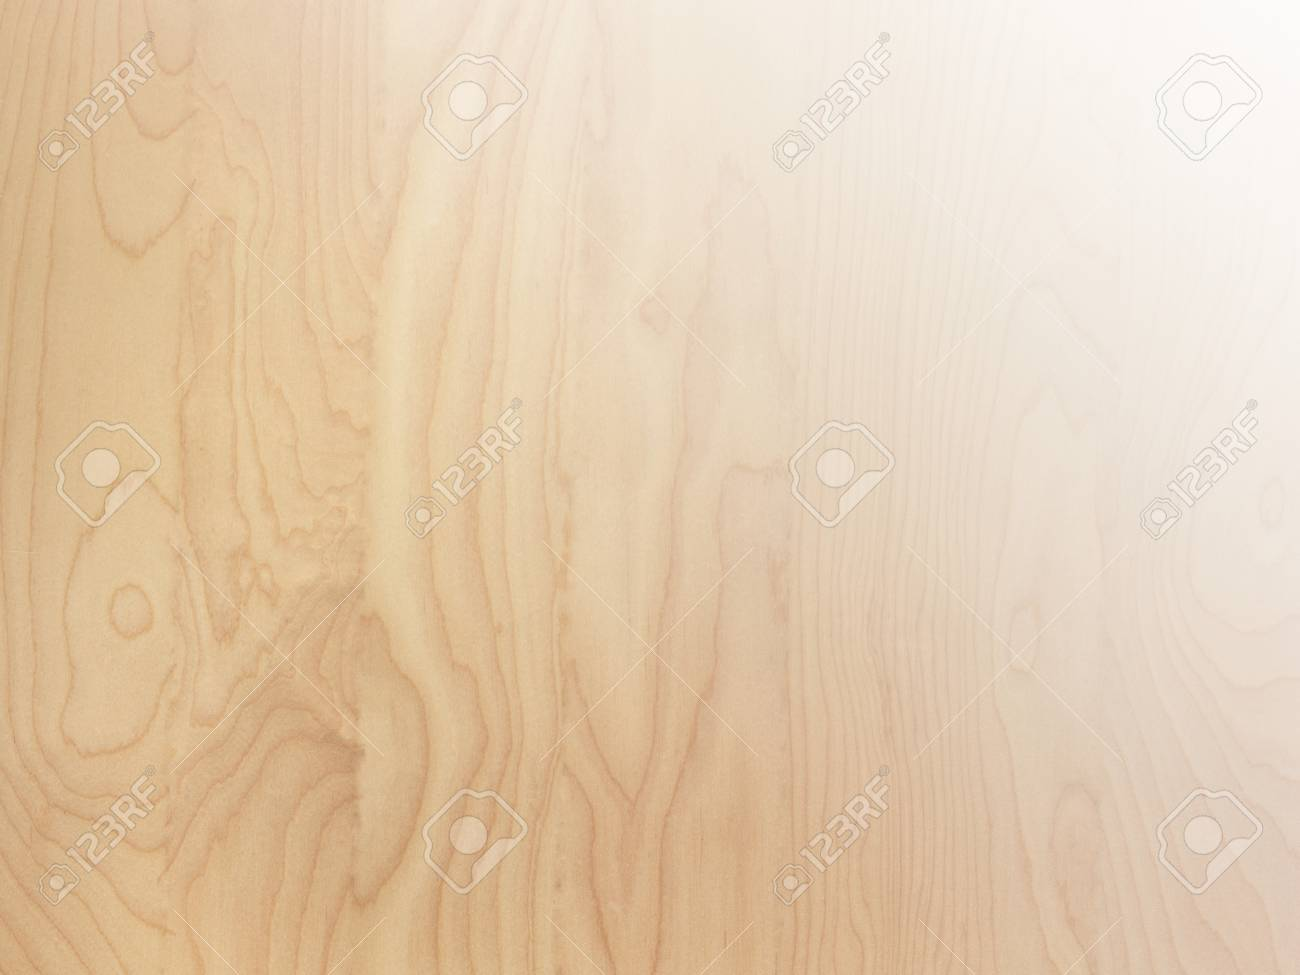 stock photo subtle light brown tan smooth birch wood grain abstract background surface with gradient